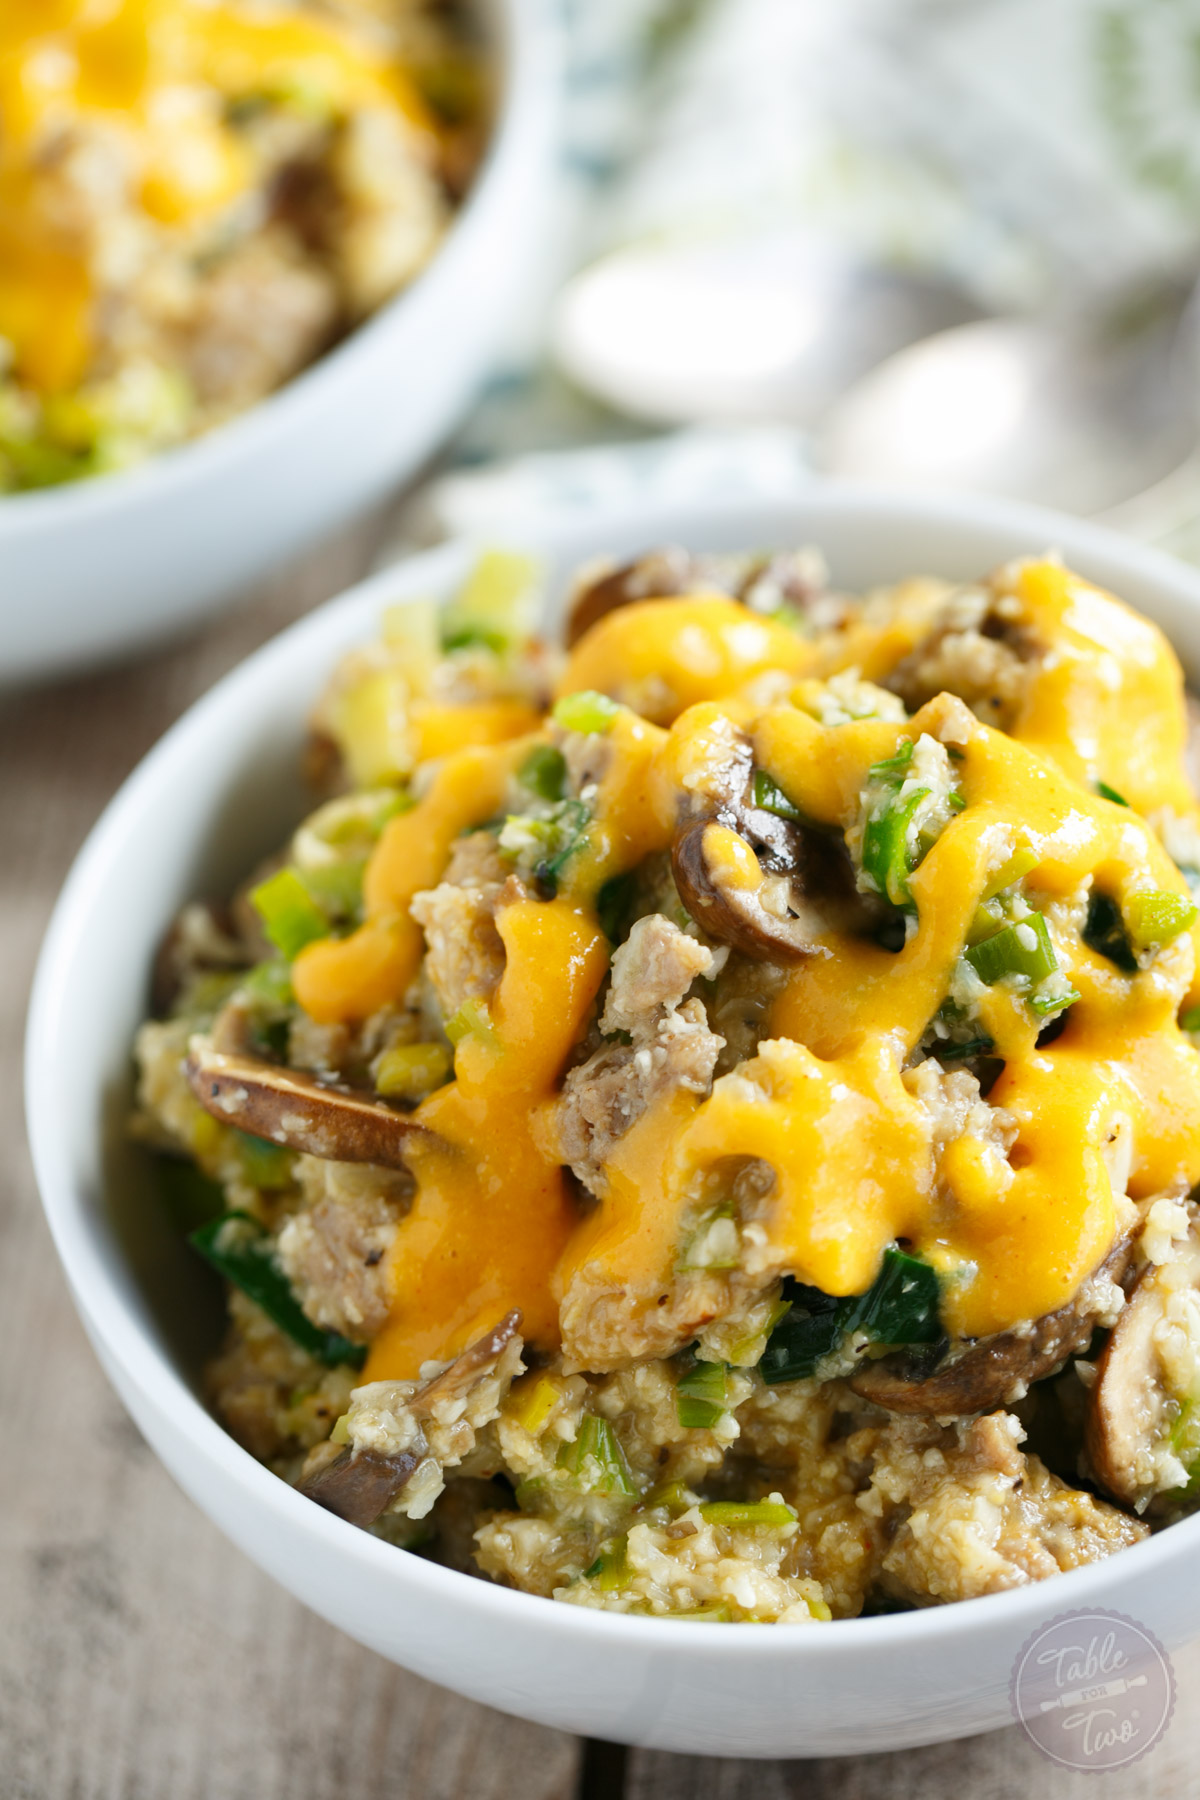 A cauliflower bowl with mushrooms, leeks, and brats topped with a beer-cheese sauce made with Sargento Extra Sharp Cheddar! #sponsored